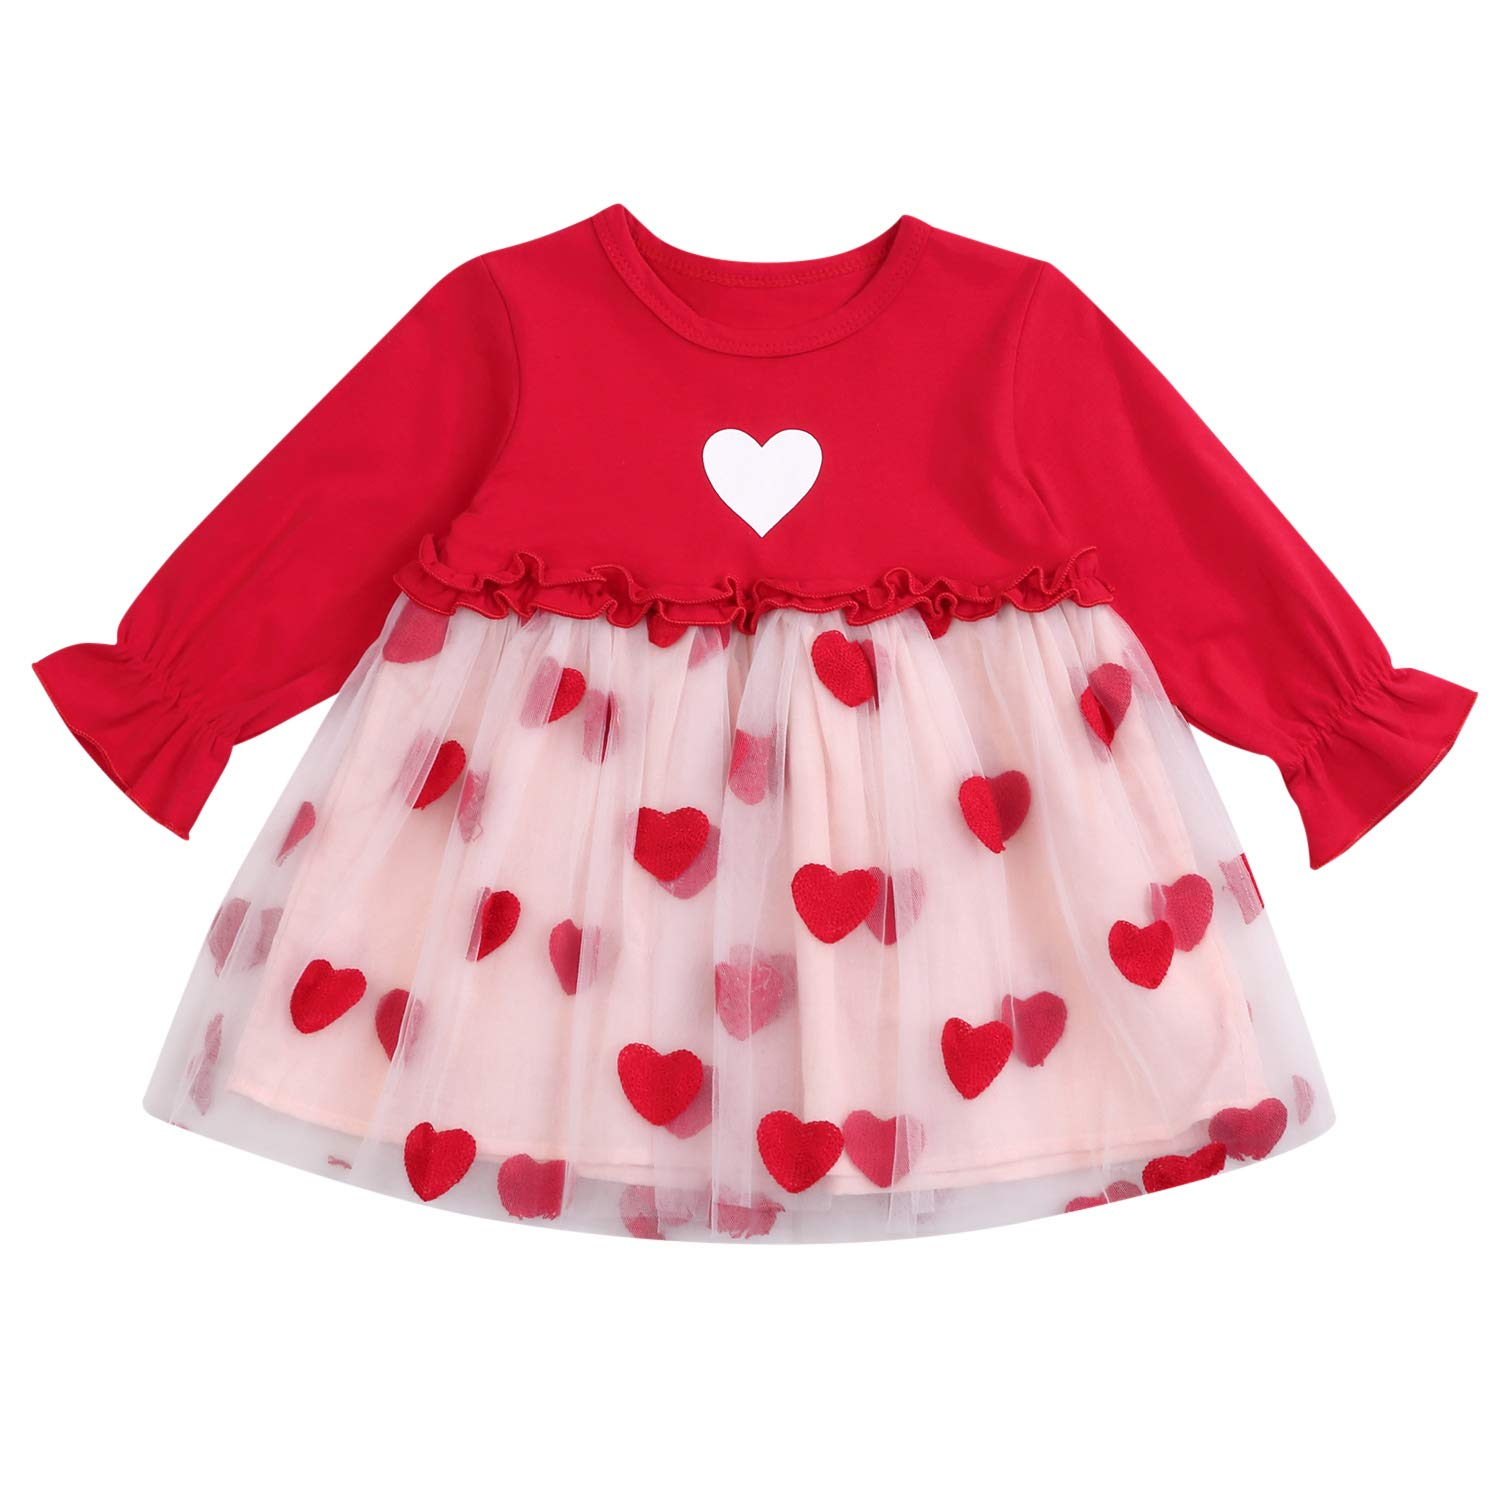 Toddler Baby Girls Valentine's Day Outfits Red Love Dress Trumpet Sleeve Tutu Skirt Winter Clothes